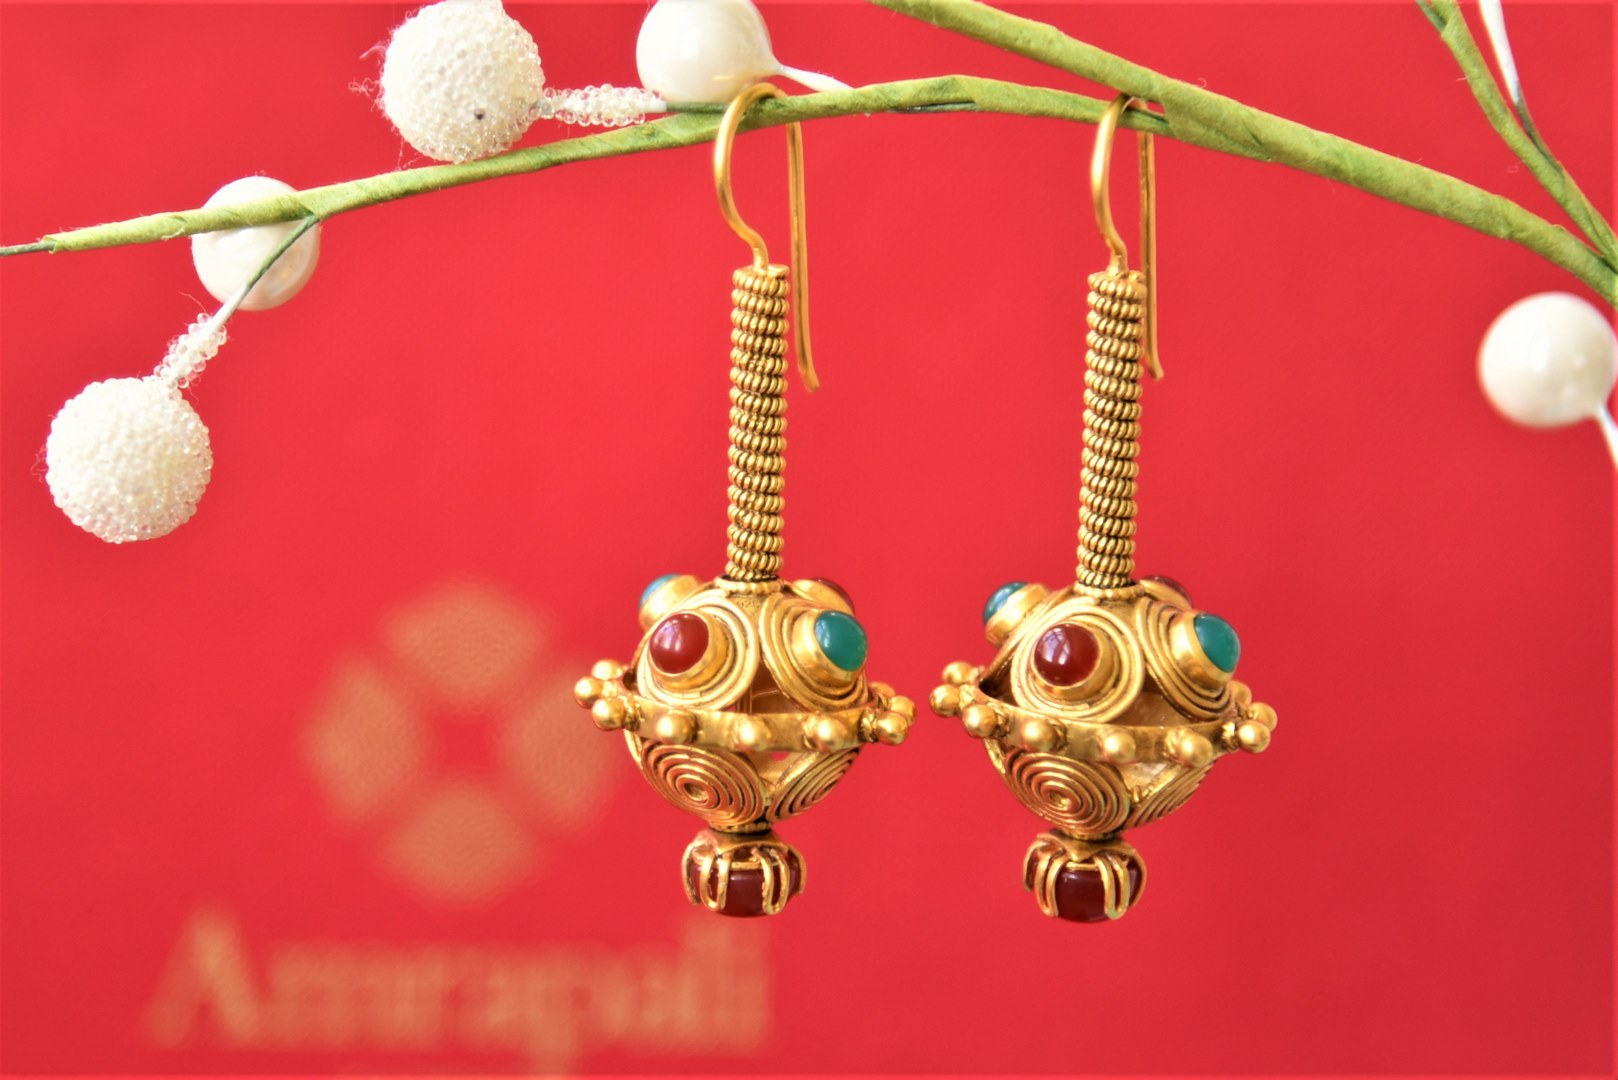 Shop Amrapali silver gold plated colored stone ball drop earrings online in USA. Complete your traditional style with exquisite gold plated jewelry from Pure Elegance Indian fashion store in USA.-front